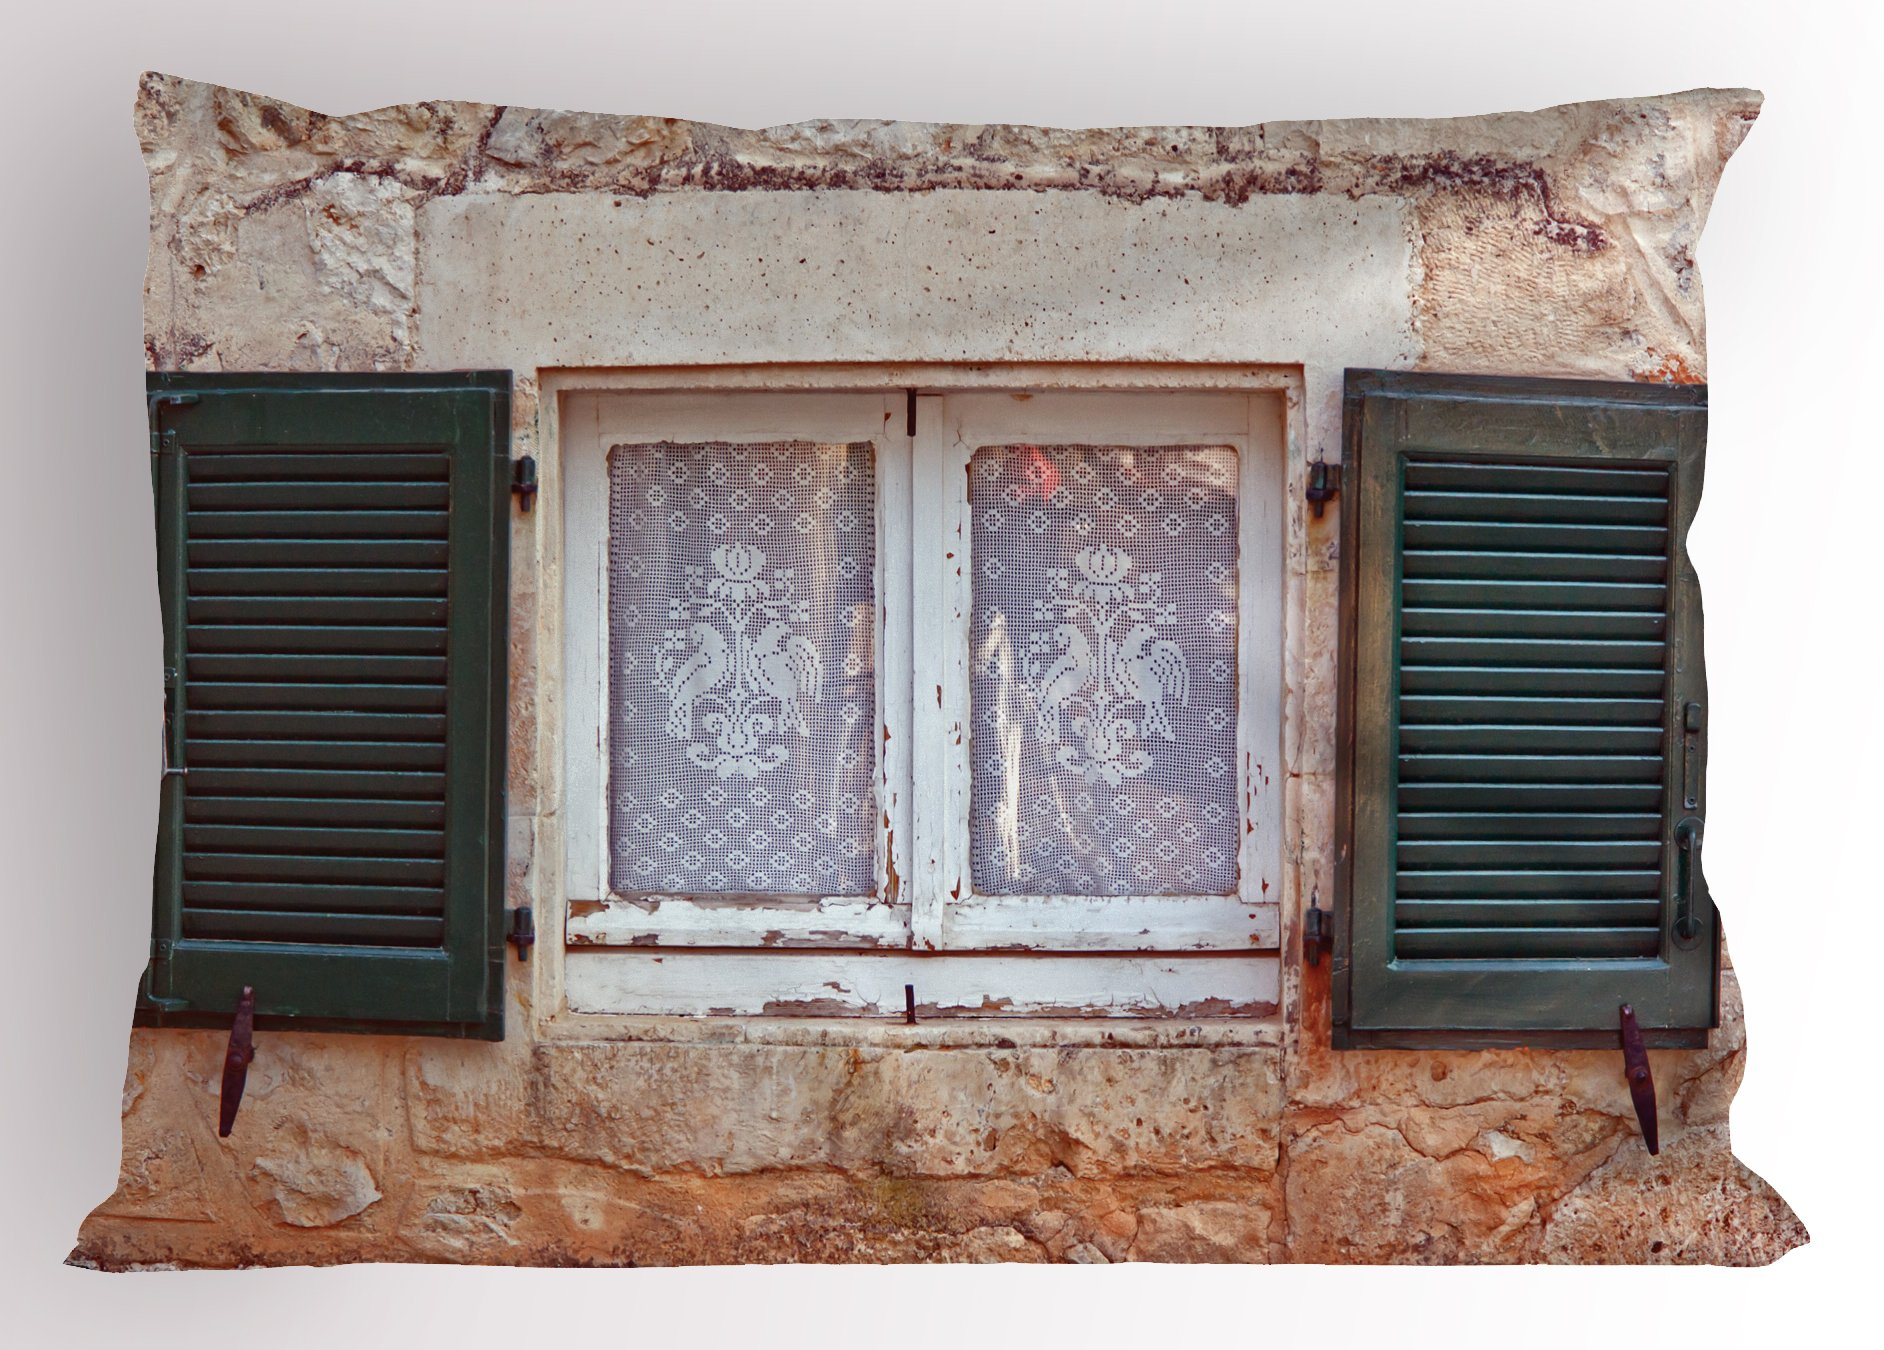 Lunarable Country Pillow Sham, Mediterranean Aged Cottage with Antique Window Shutters in Greece Island Image, Decorative Standard Size Printed Pillowcase, 26 X 20 inches, Grey Green